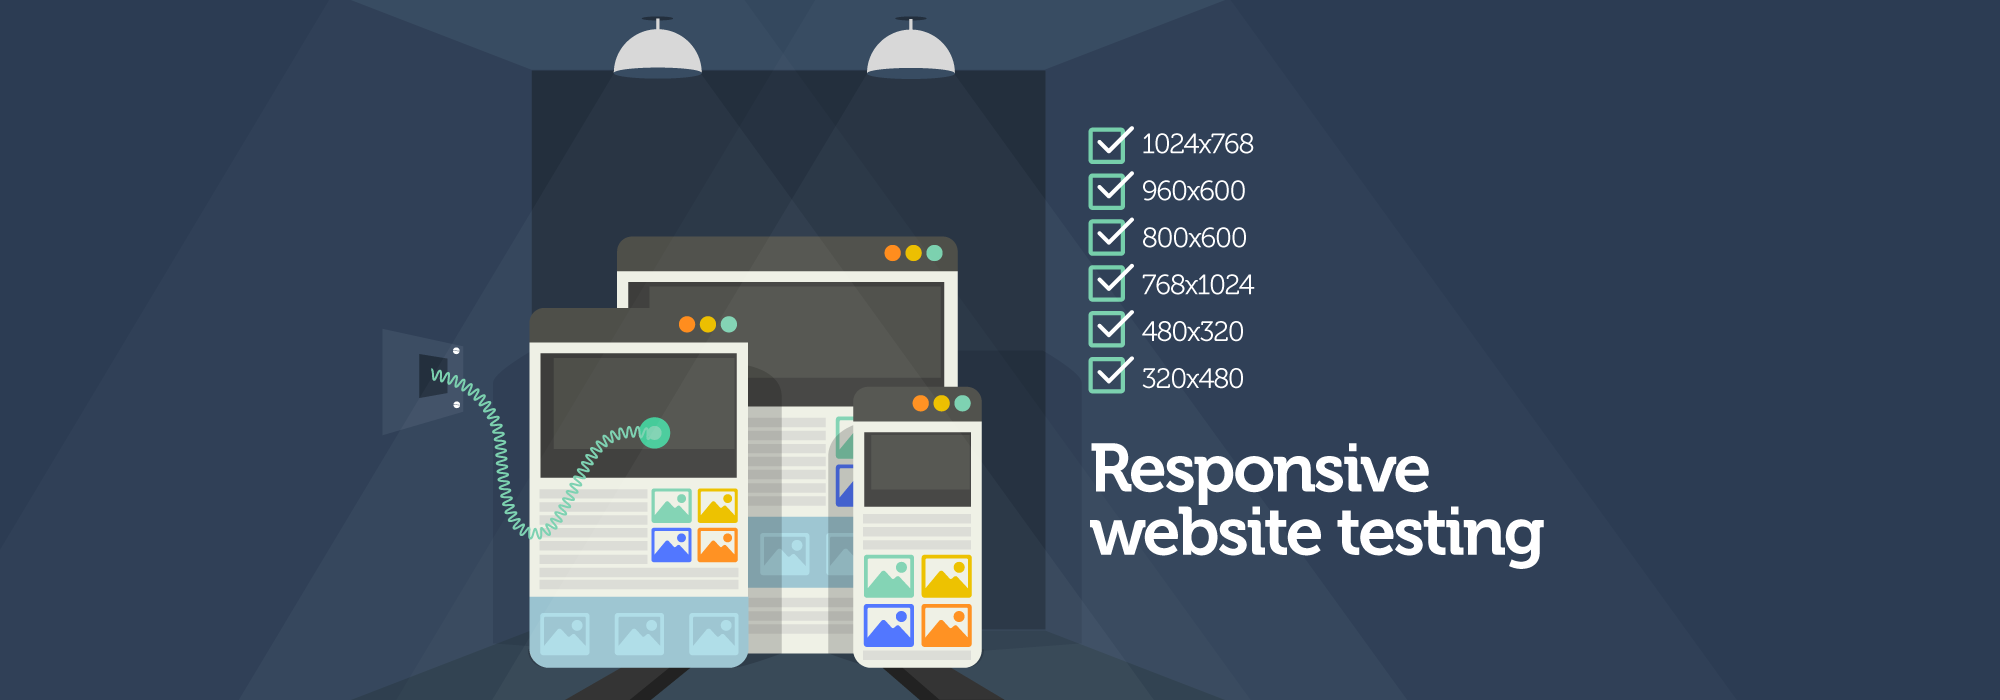 Testing a Responsive Website: Major Challenges & Solutions